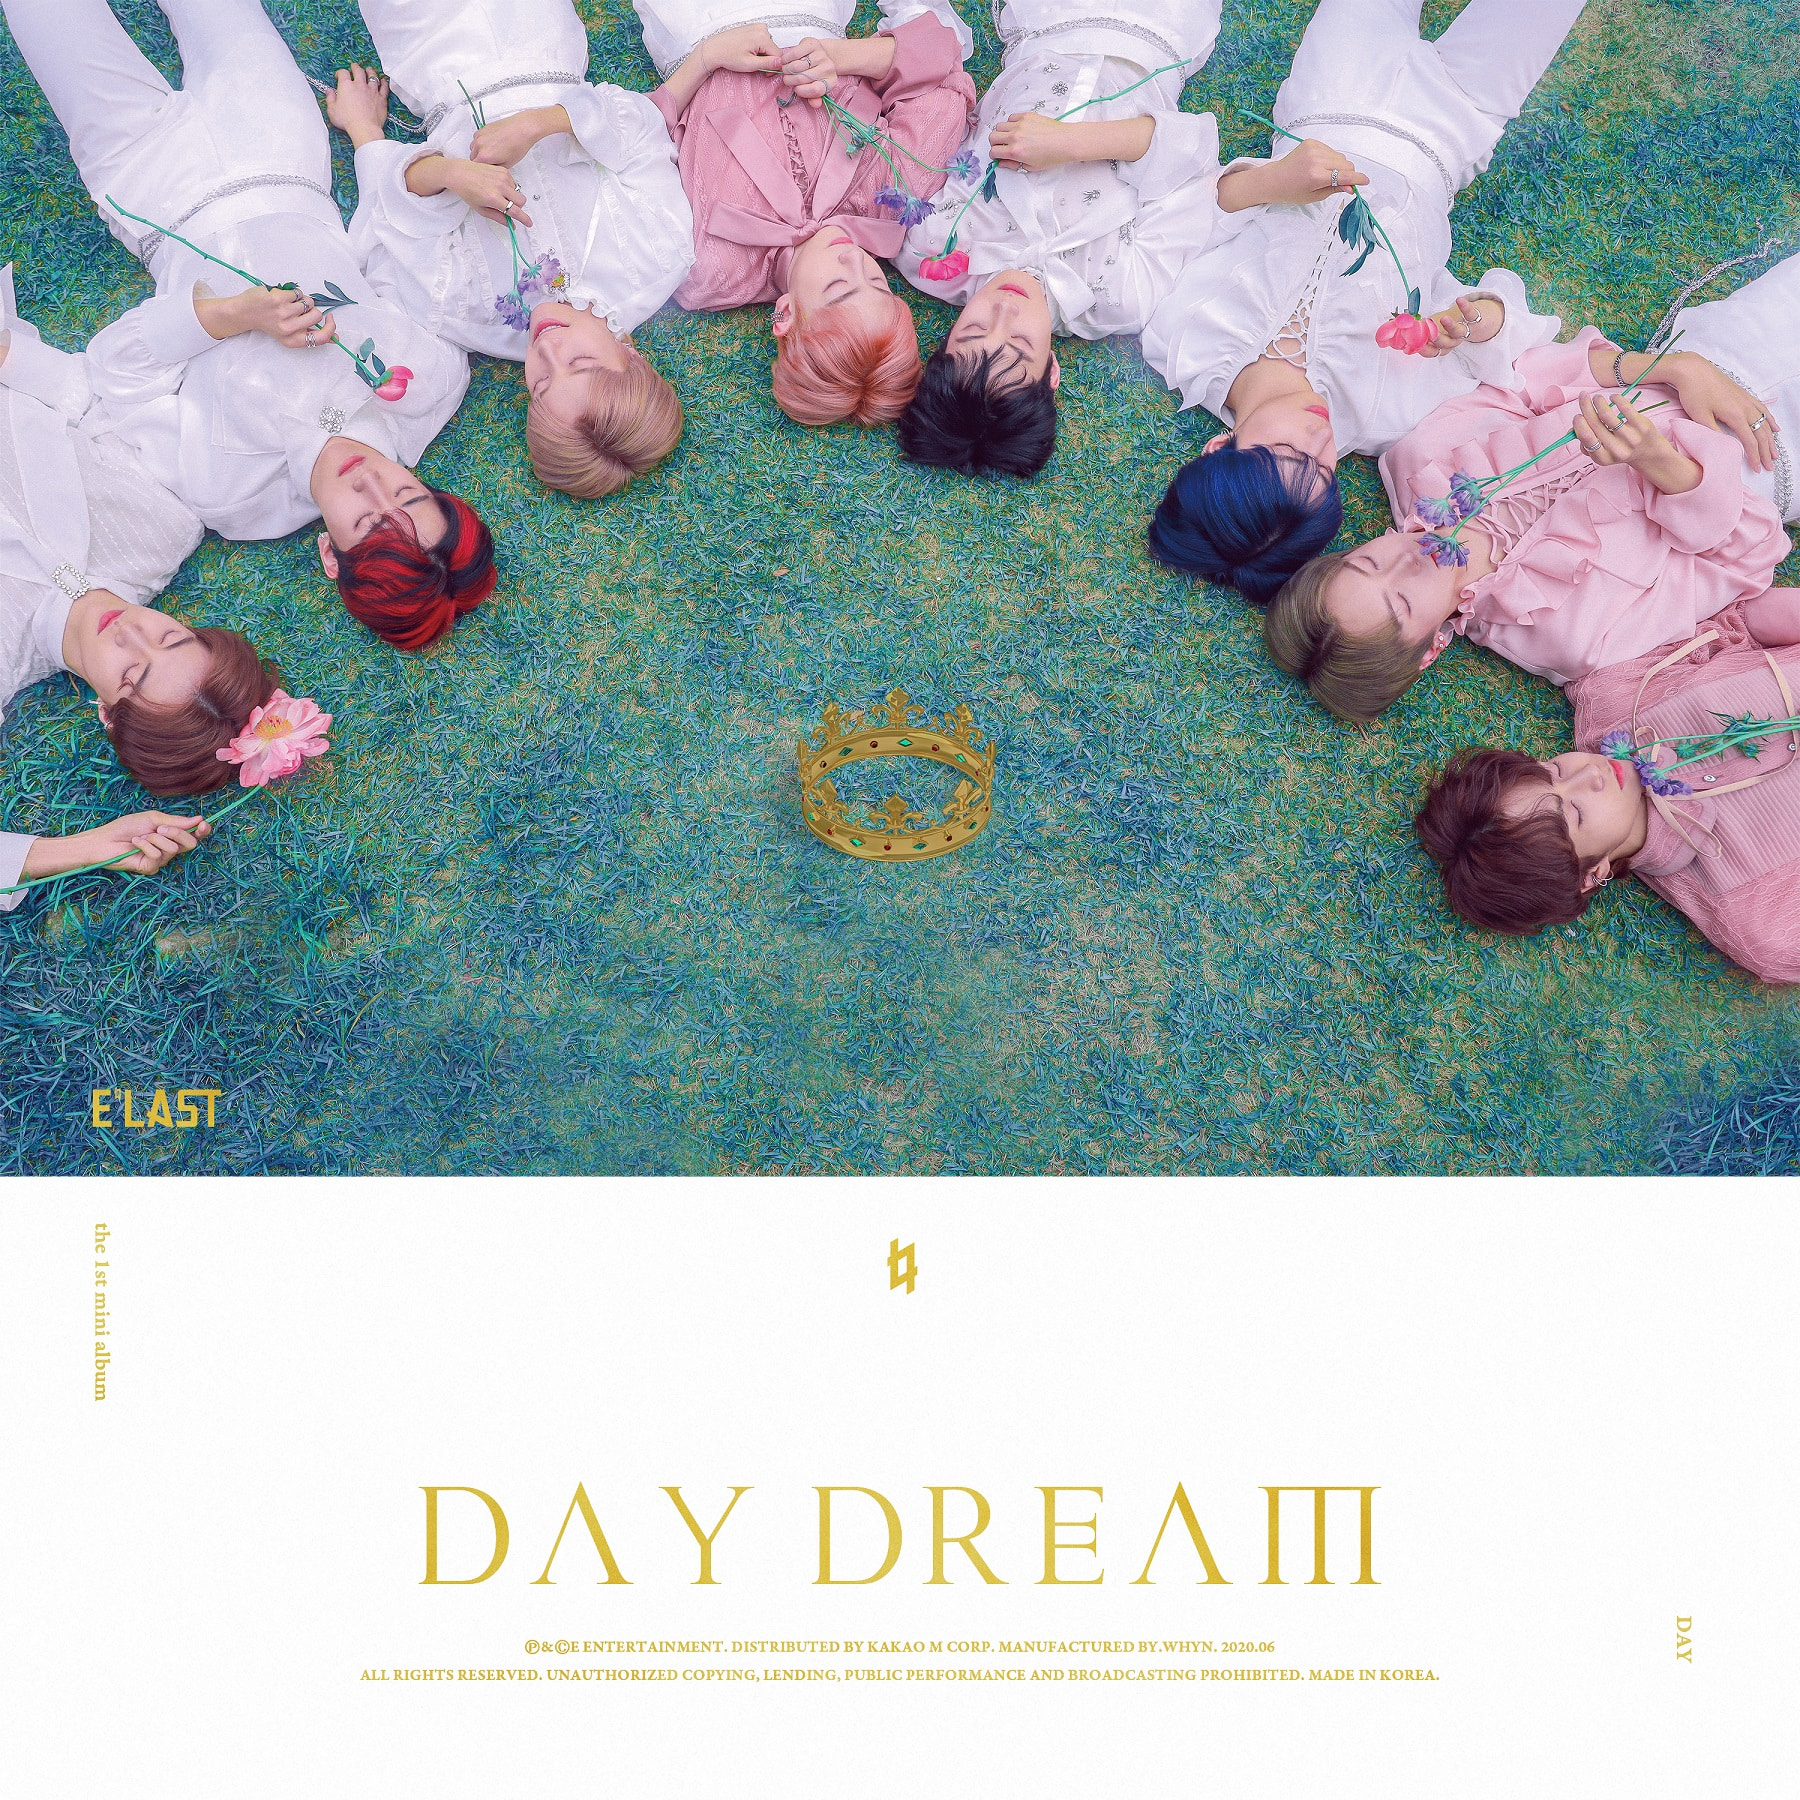 E'LAST - Mini Album Vol.1 [Day Dream] (Day Ver.)케이팝스토어(kpop store)